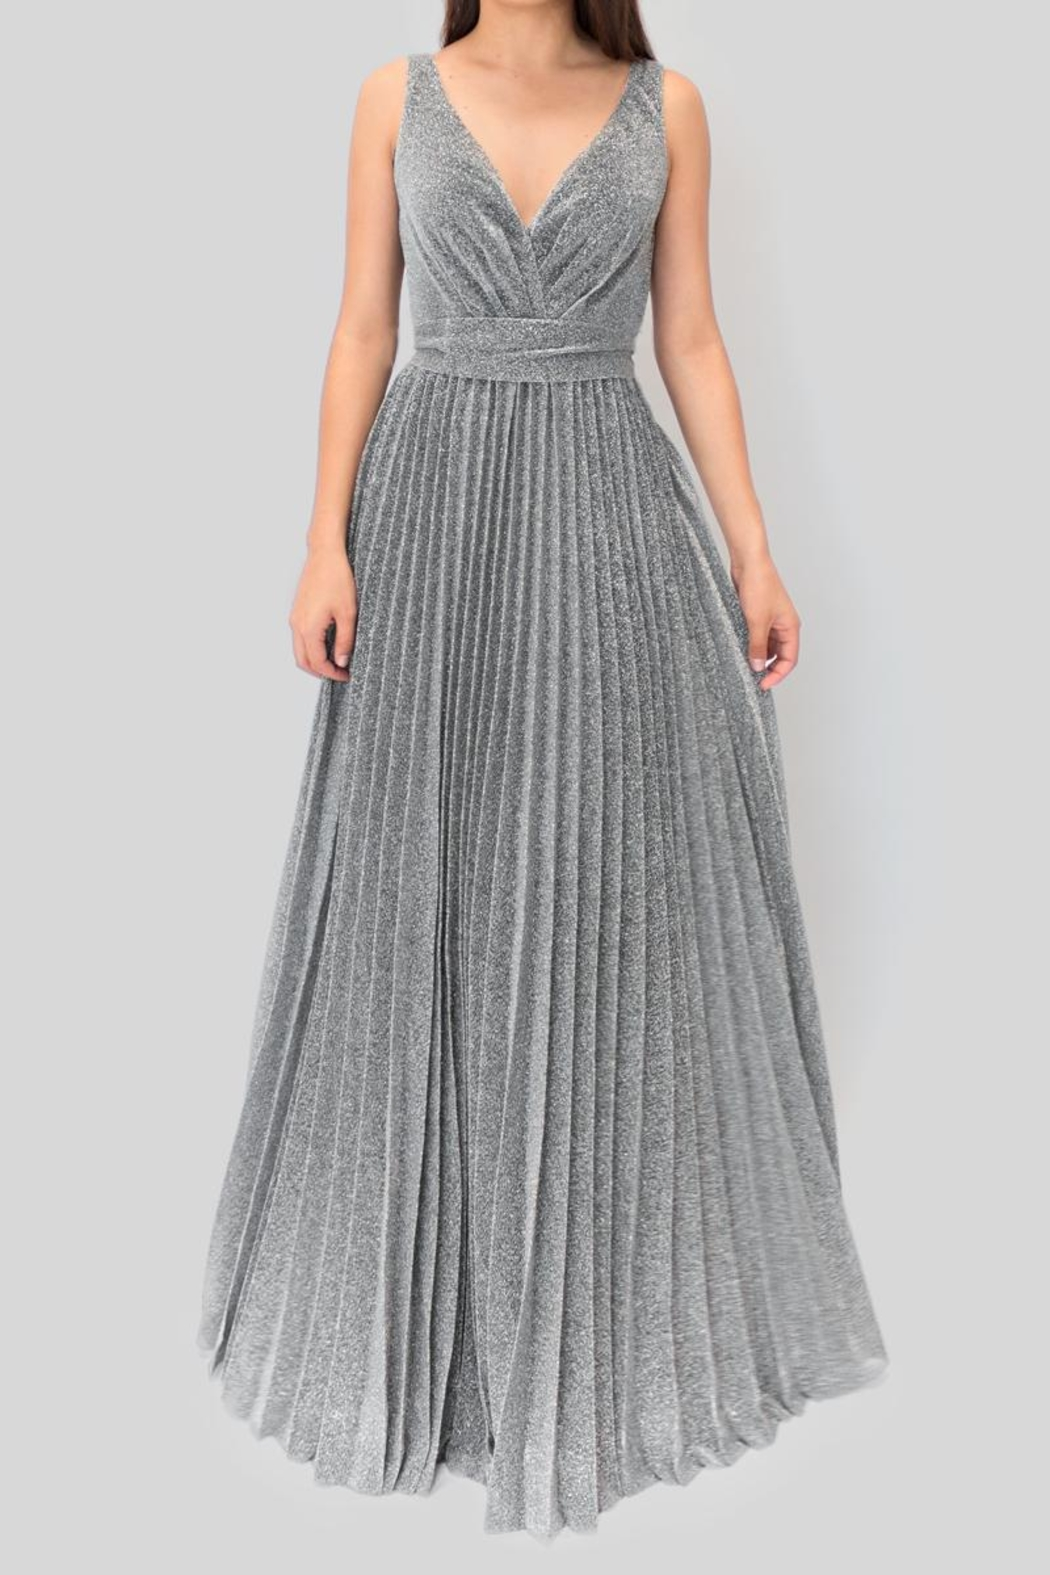 maniju Plated Silver Dress - Main Image